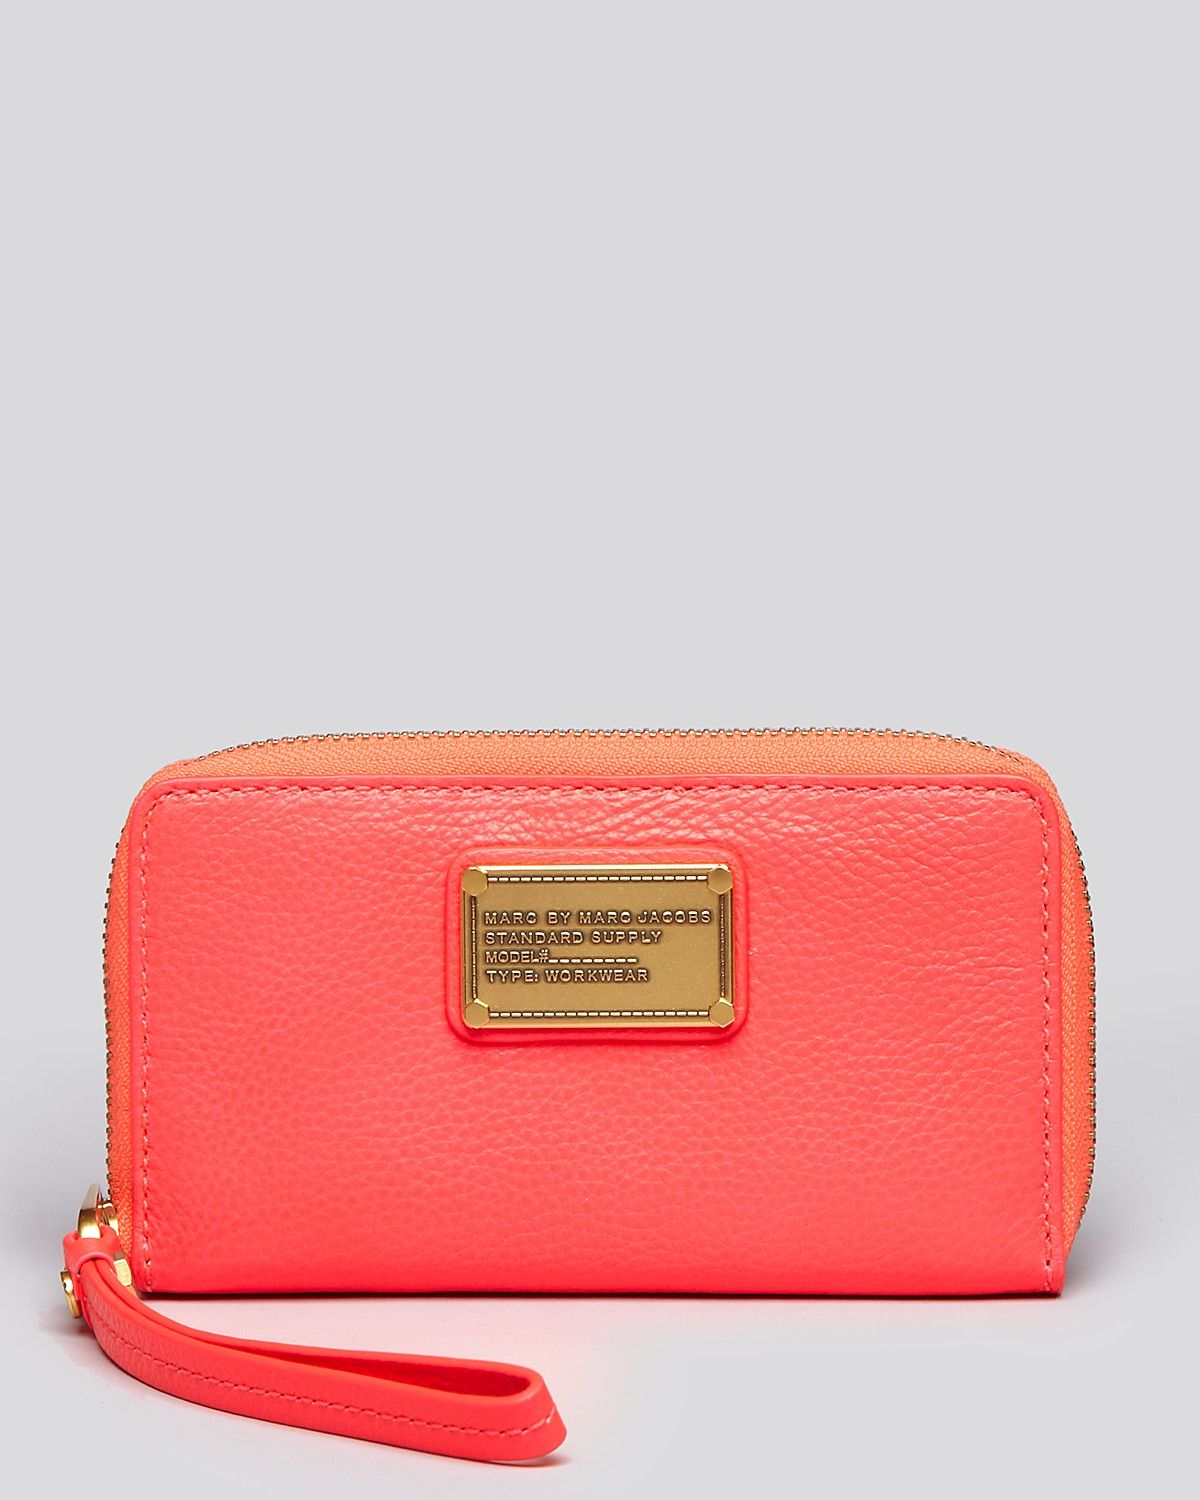 9f0d6ff599d1aa MARC BY MARC JACOBS Wristlet - Classic Q Wingman iPhone 5 Case   Bloomingdale's  Buy Chanel